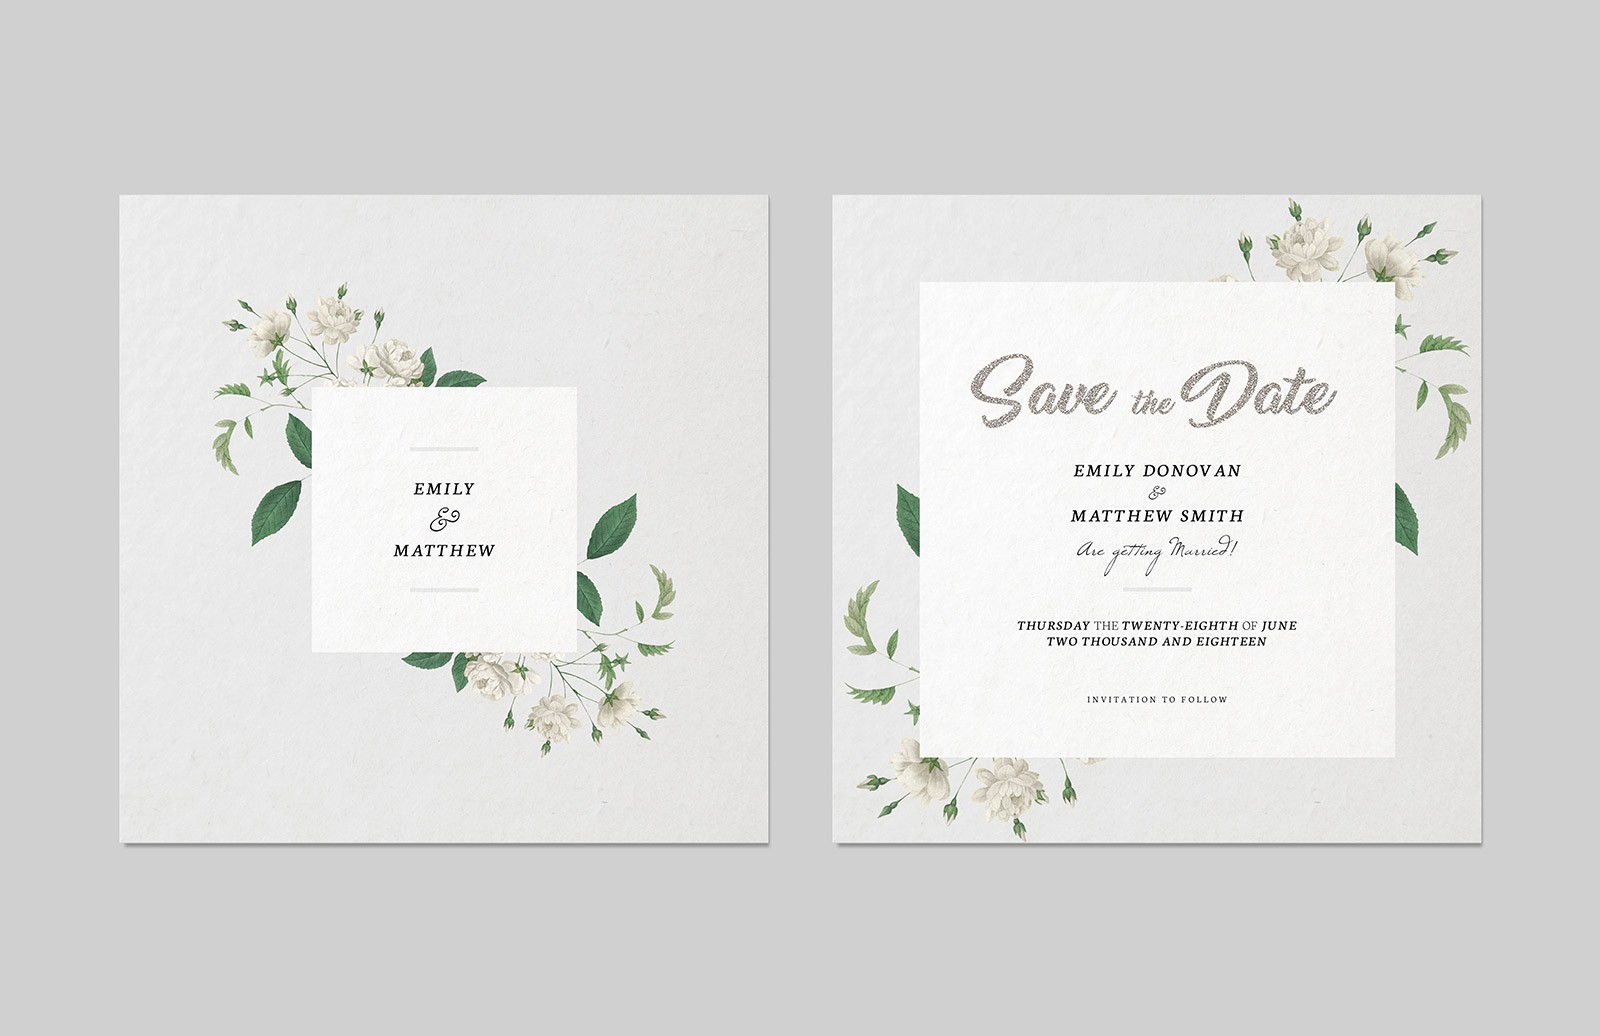 Save The Date Invitation Template Medialoot - Save the date text template